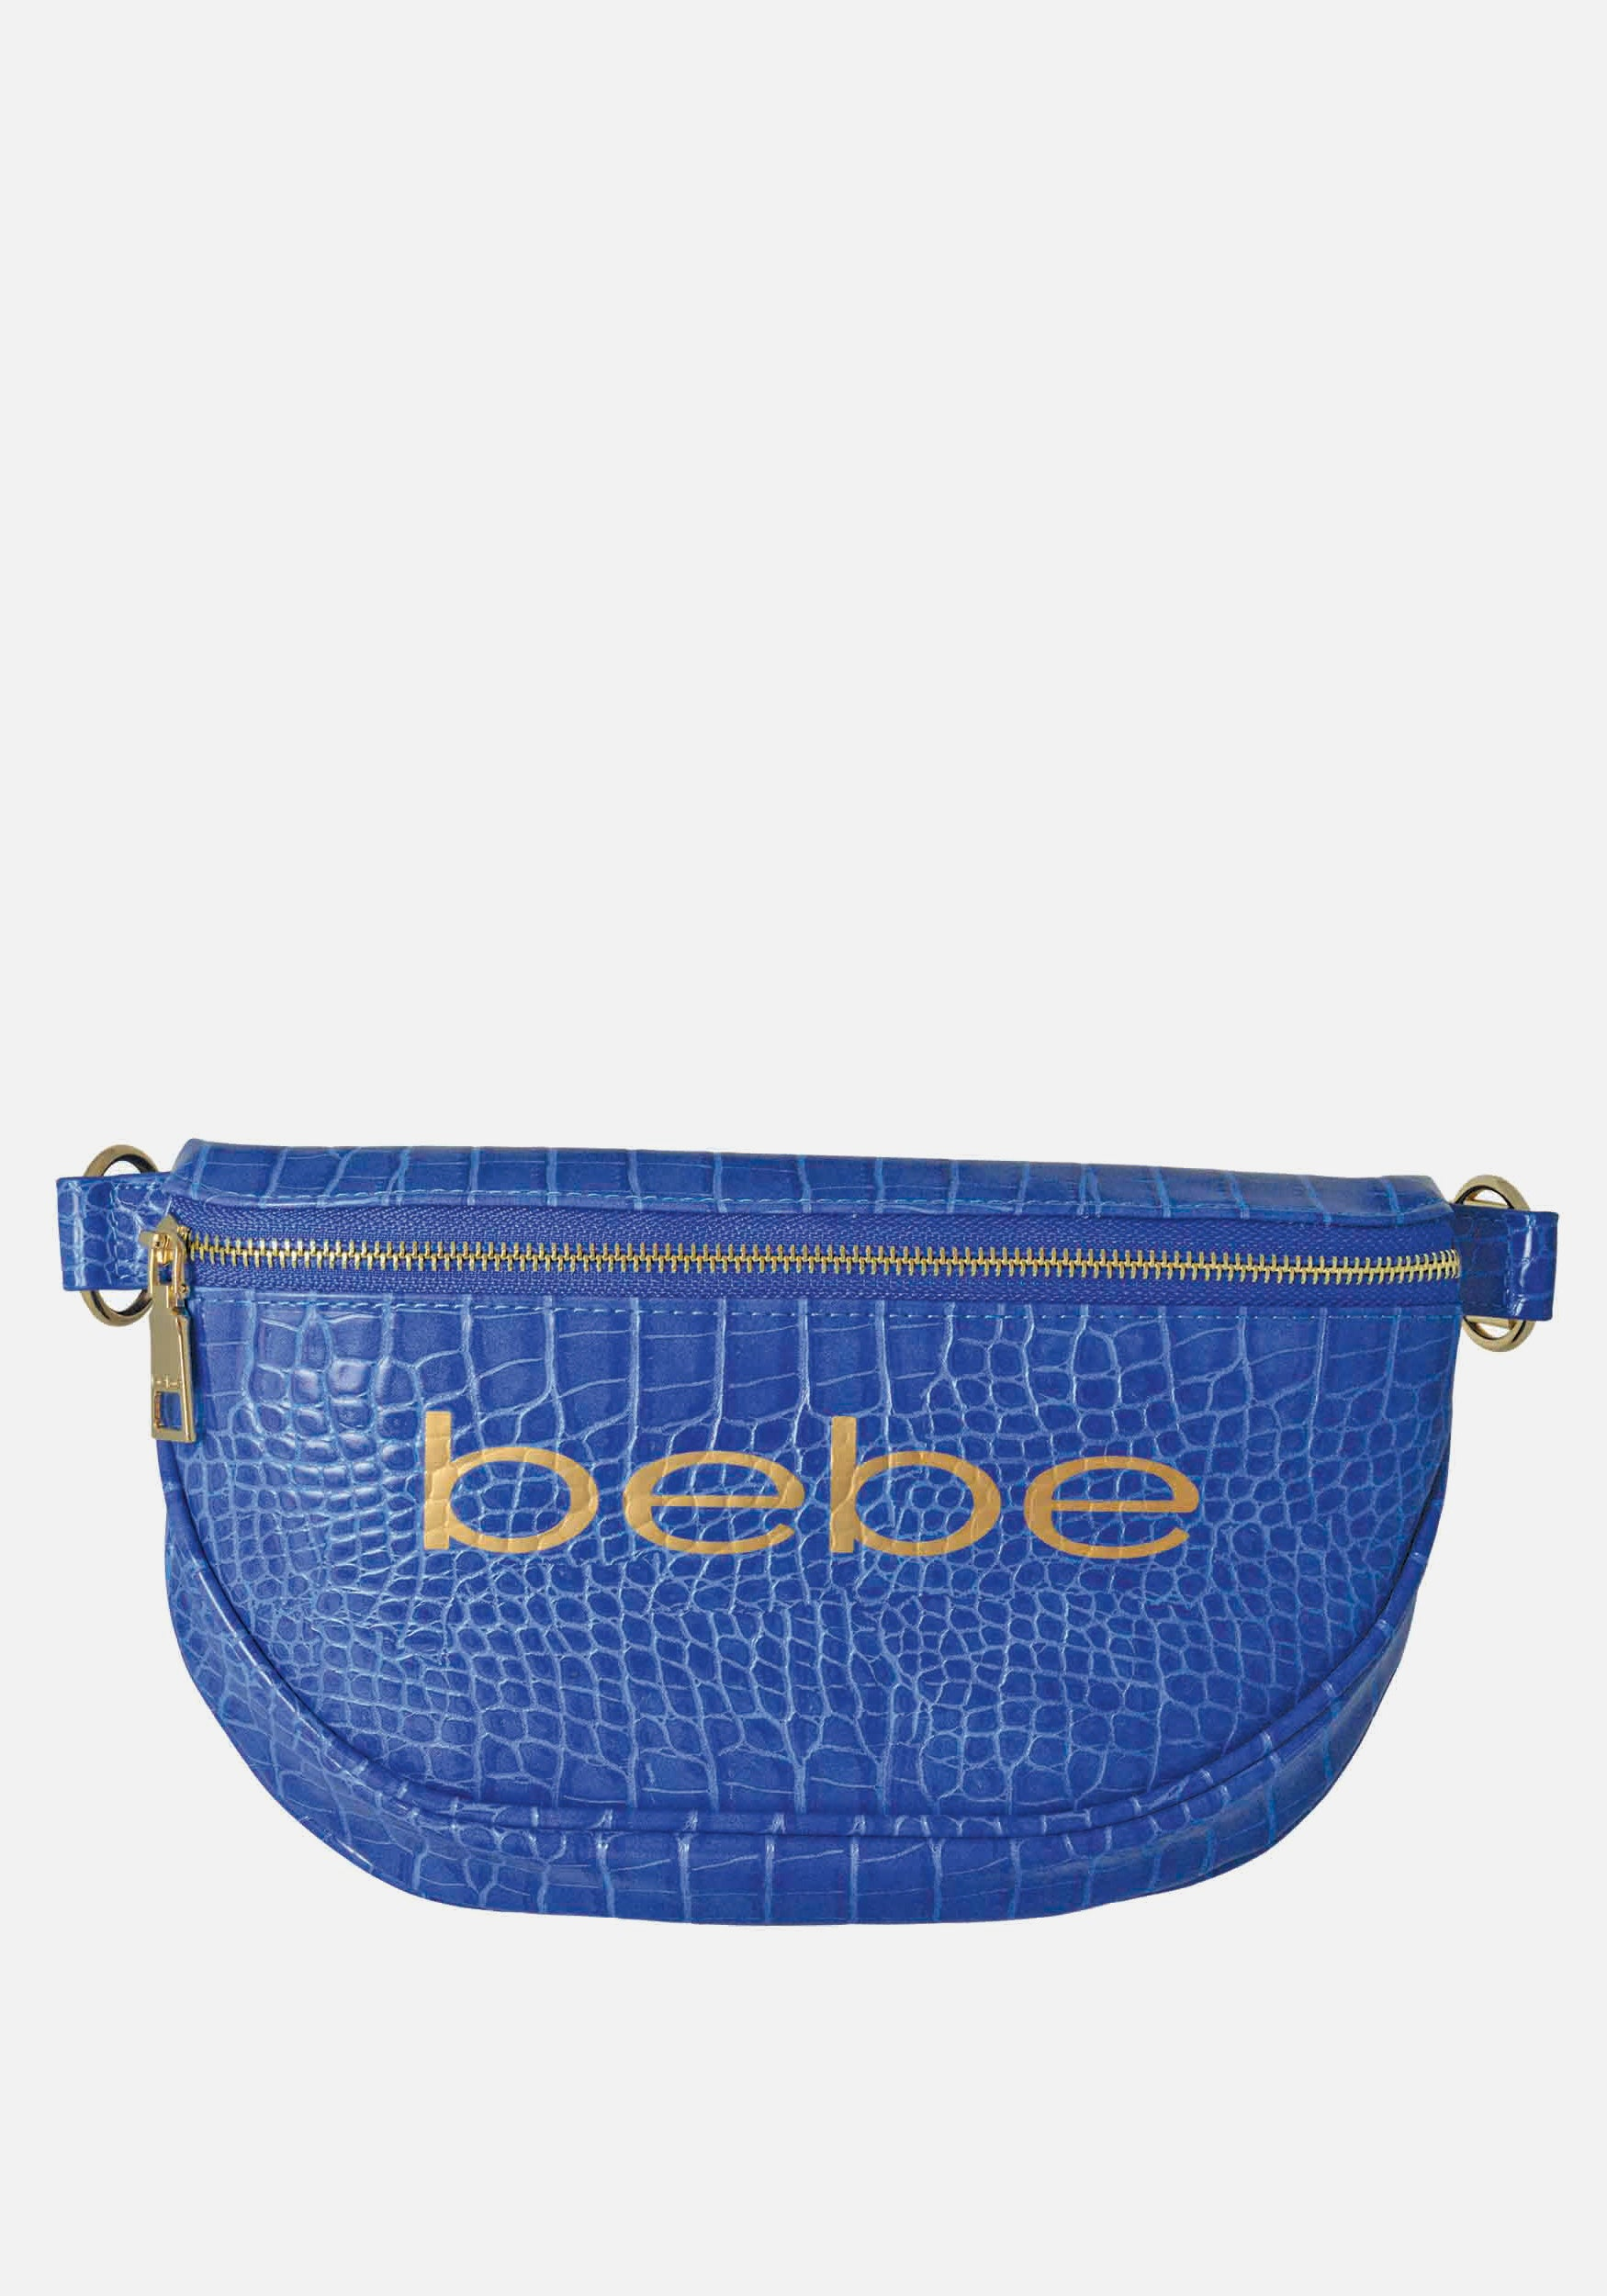 Bebe coupon: Bebe Women's Josephine Croco Convertible Sling in Blue Polyester